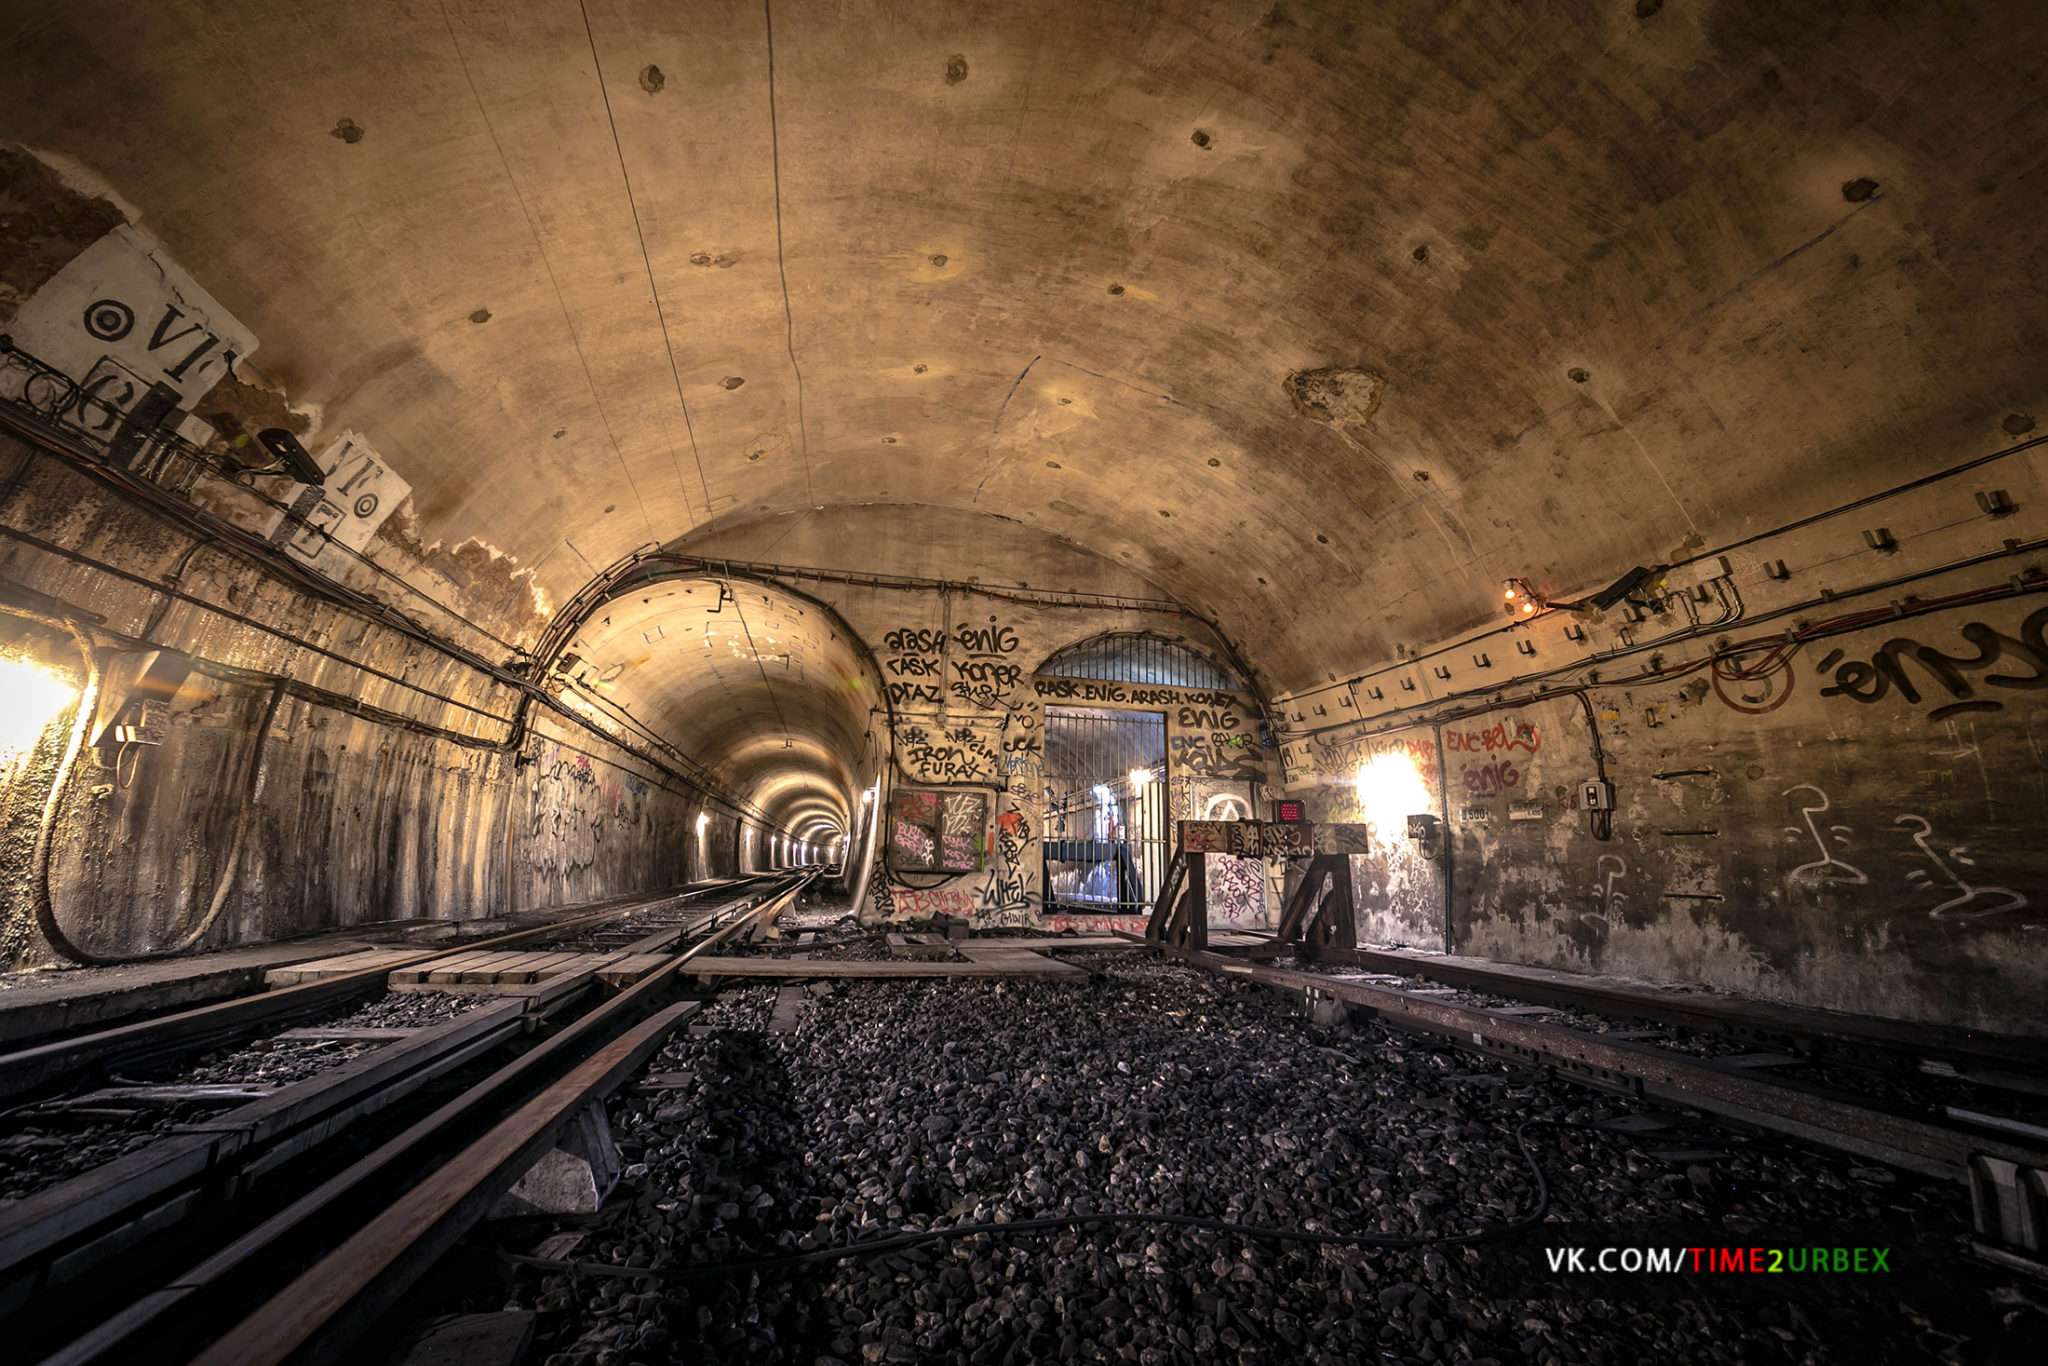 56 7 GHOST STATIONS OF THE PARIS METRO AND HOW TO GET INTO THE ILLEGALLY + UNUSUAL TUNNELS + RER